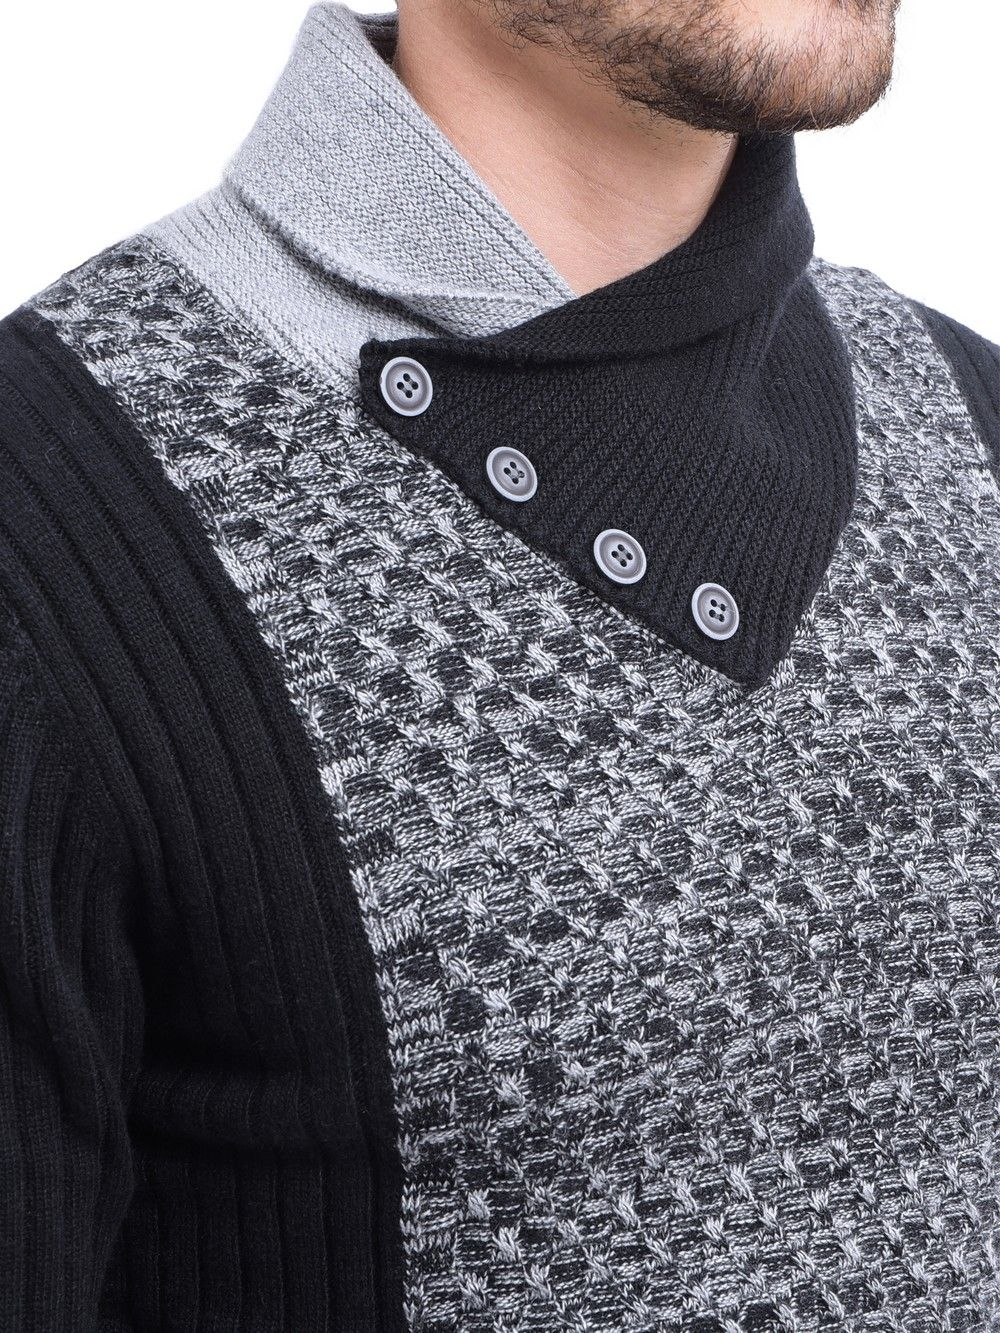 C&JO Shawl Collar Jacquard Sweater with Butons in Black